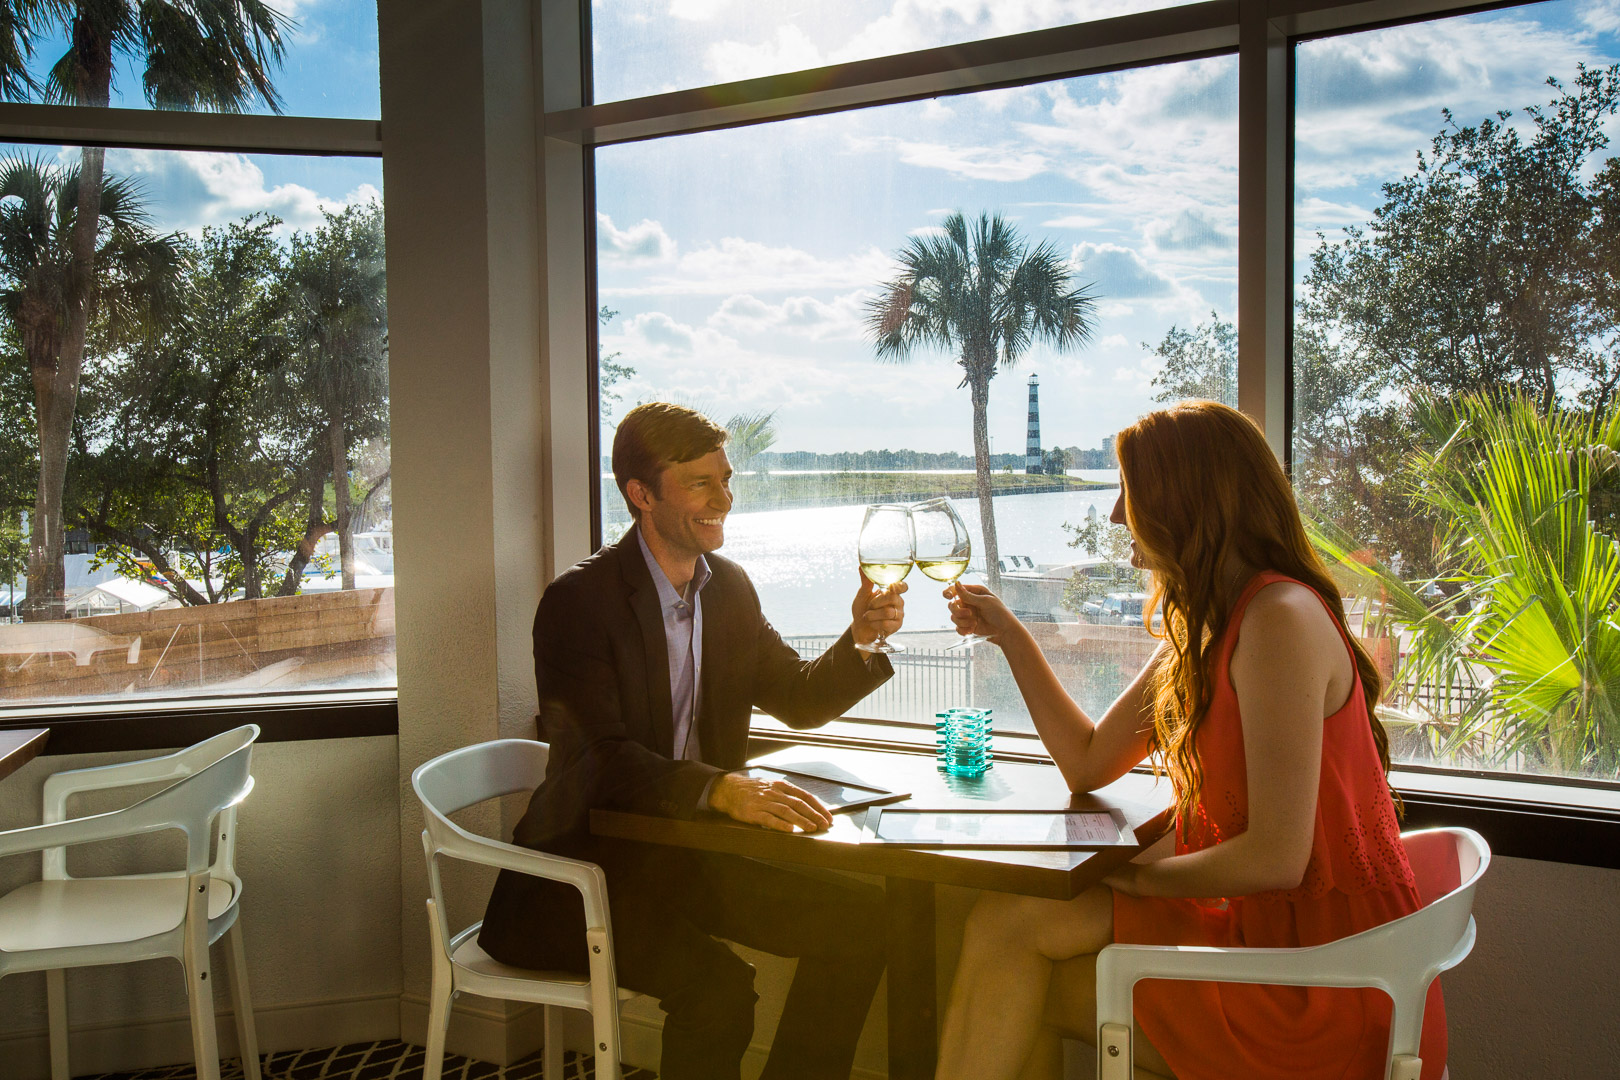 couple clinking their wine glasses at a restaurant with a beach view